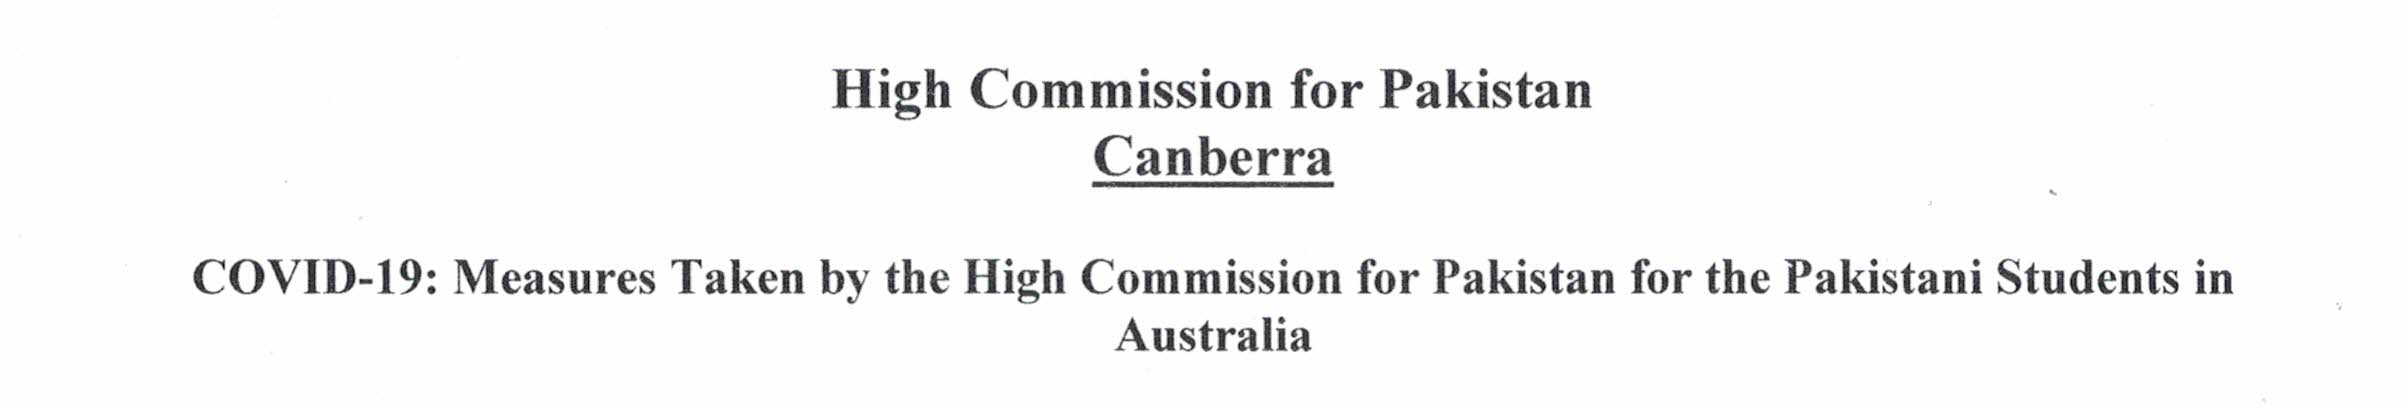 COVID-19: Measures Taken by the High Commission for Pakistan for the Pakistani Students in Australia